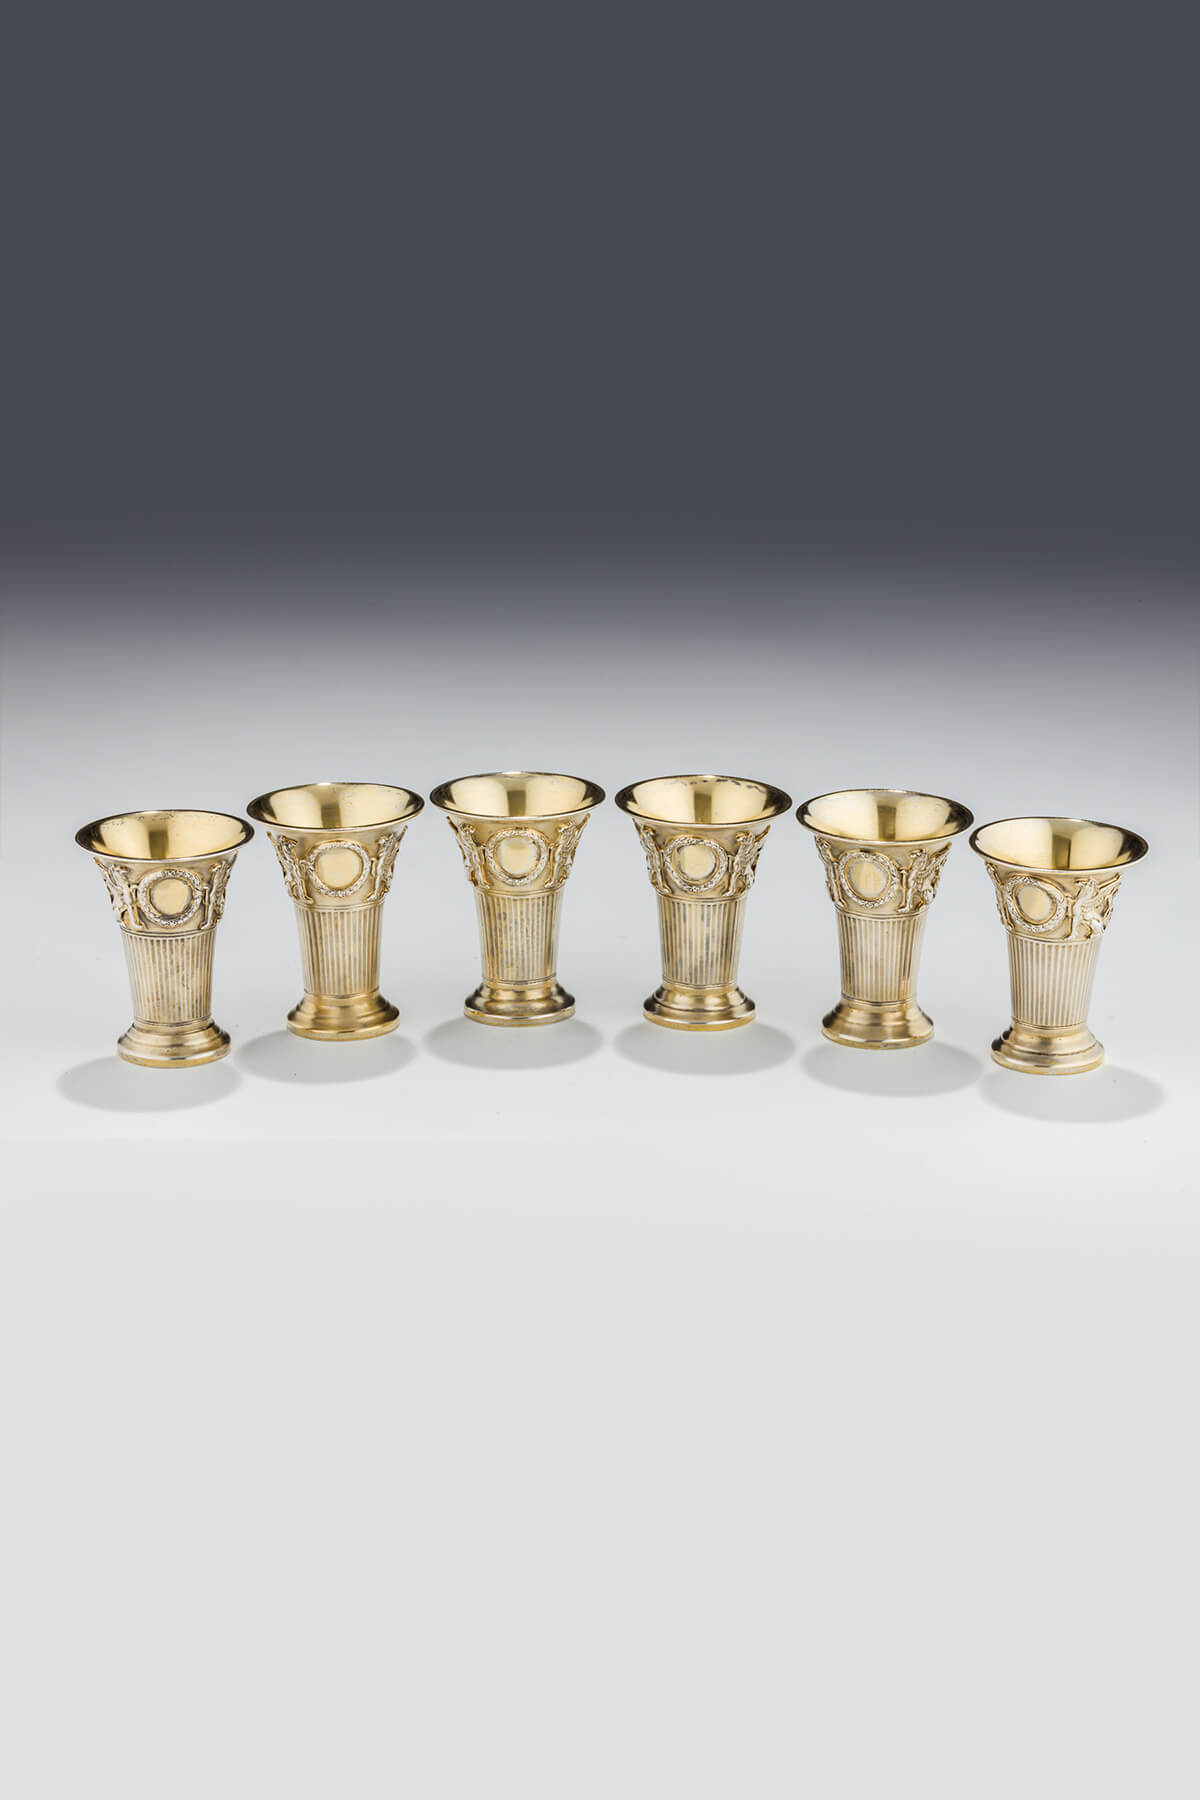 047. Six Gilded Silver Kiddush Beakers by Lazarus Posen